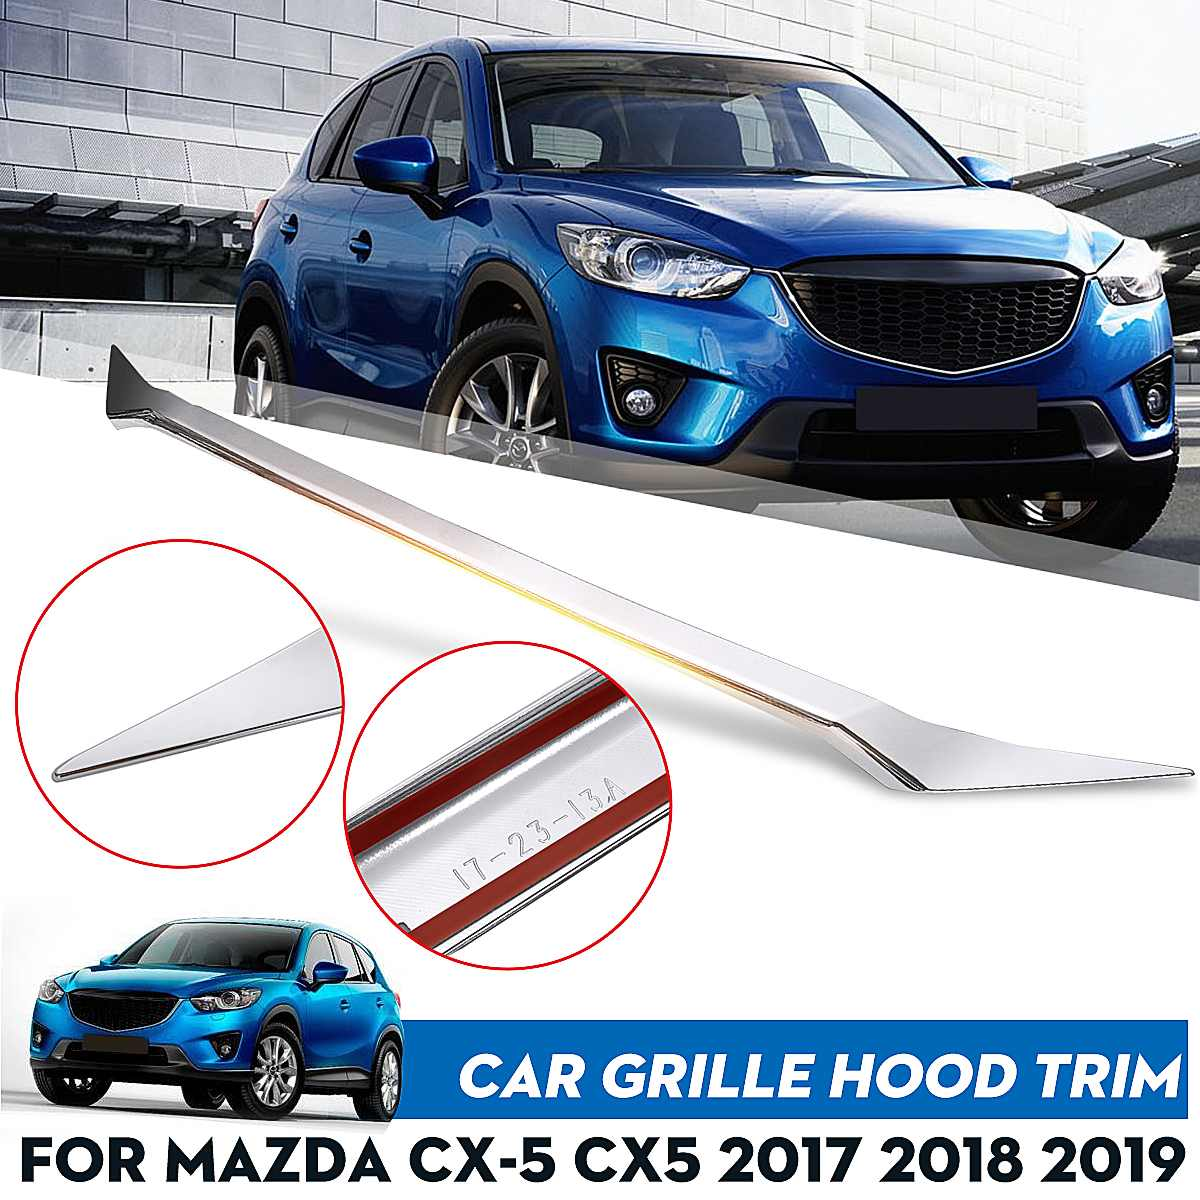 ABS Front Grille Grill Engine Hood Bonnet Cover Chrome Trim Sticker Decoration Accessories For <font><b>Mazda</b></font> CX-5 <font><b>CX5</b></font> 2017 2018 <font><b>2019</b></font> image